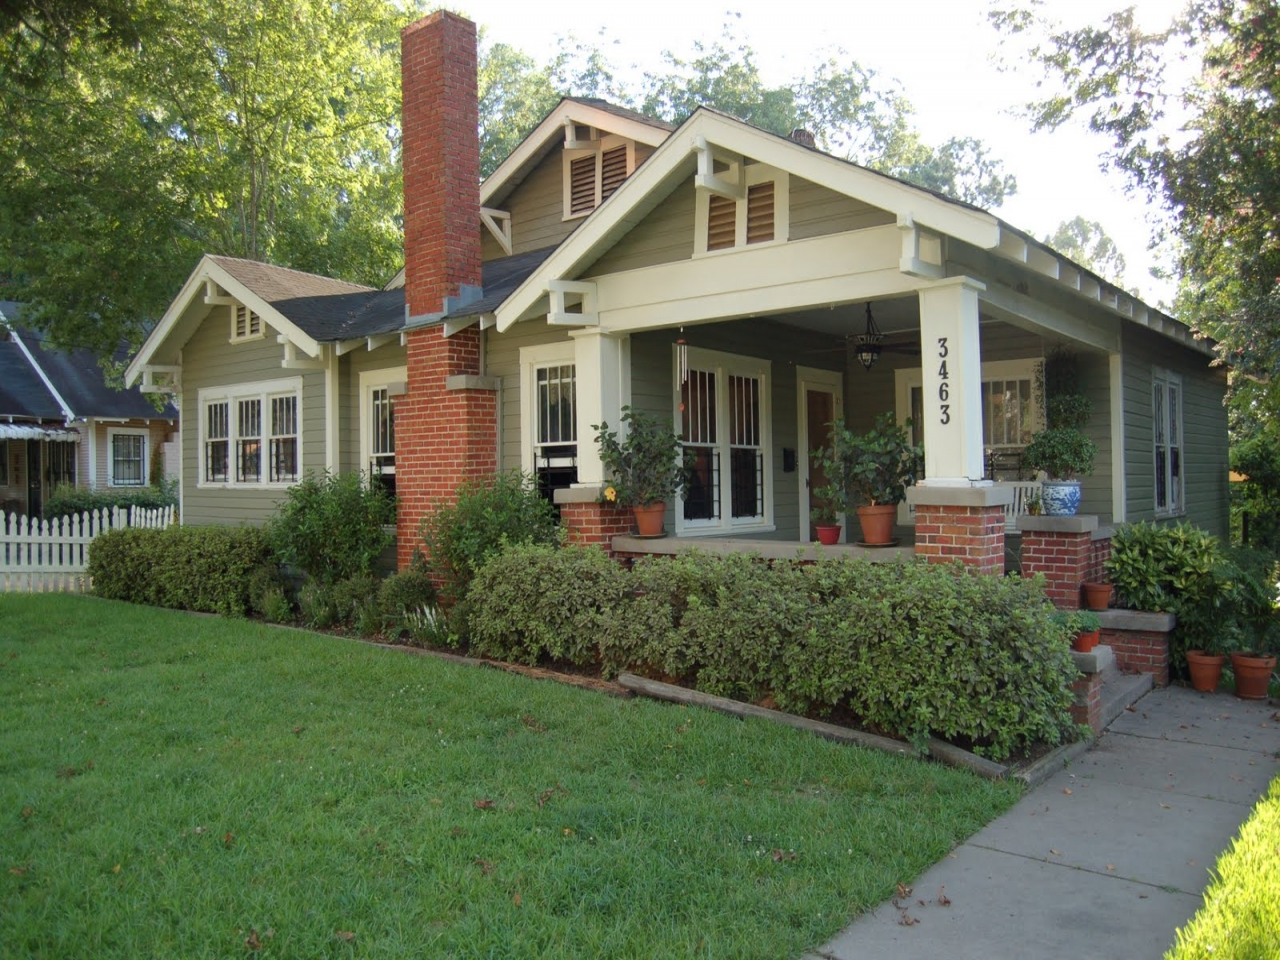 California bungalow style homes craftsman bungalow style - What is a bungalow home ...